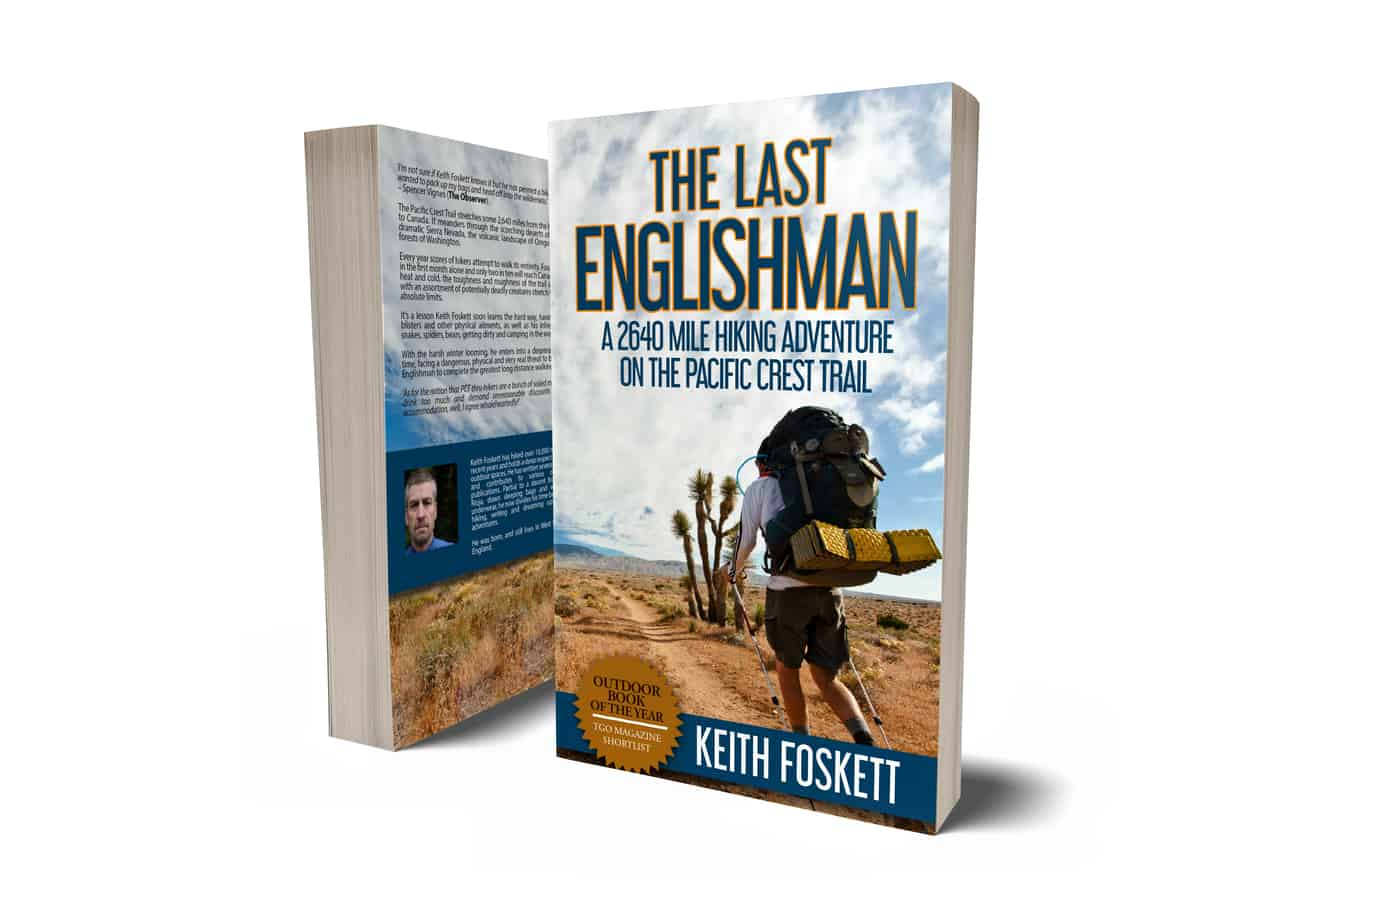 Cover page for The Last Englishman by Keith Foskett